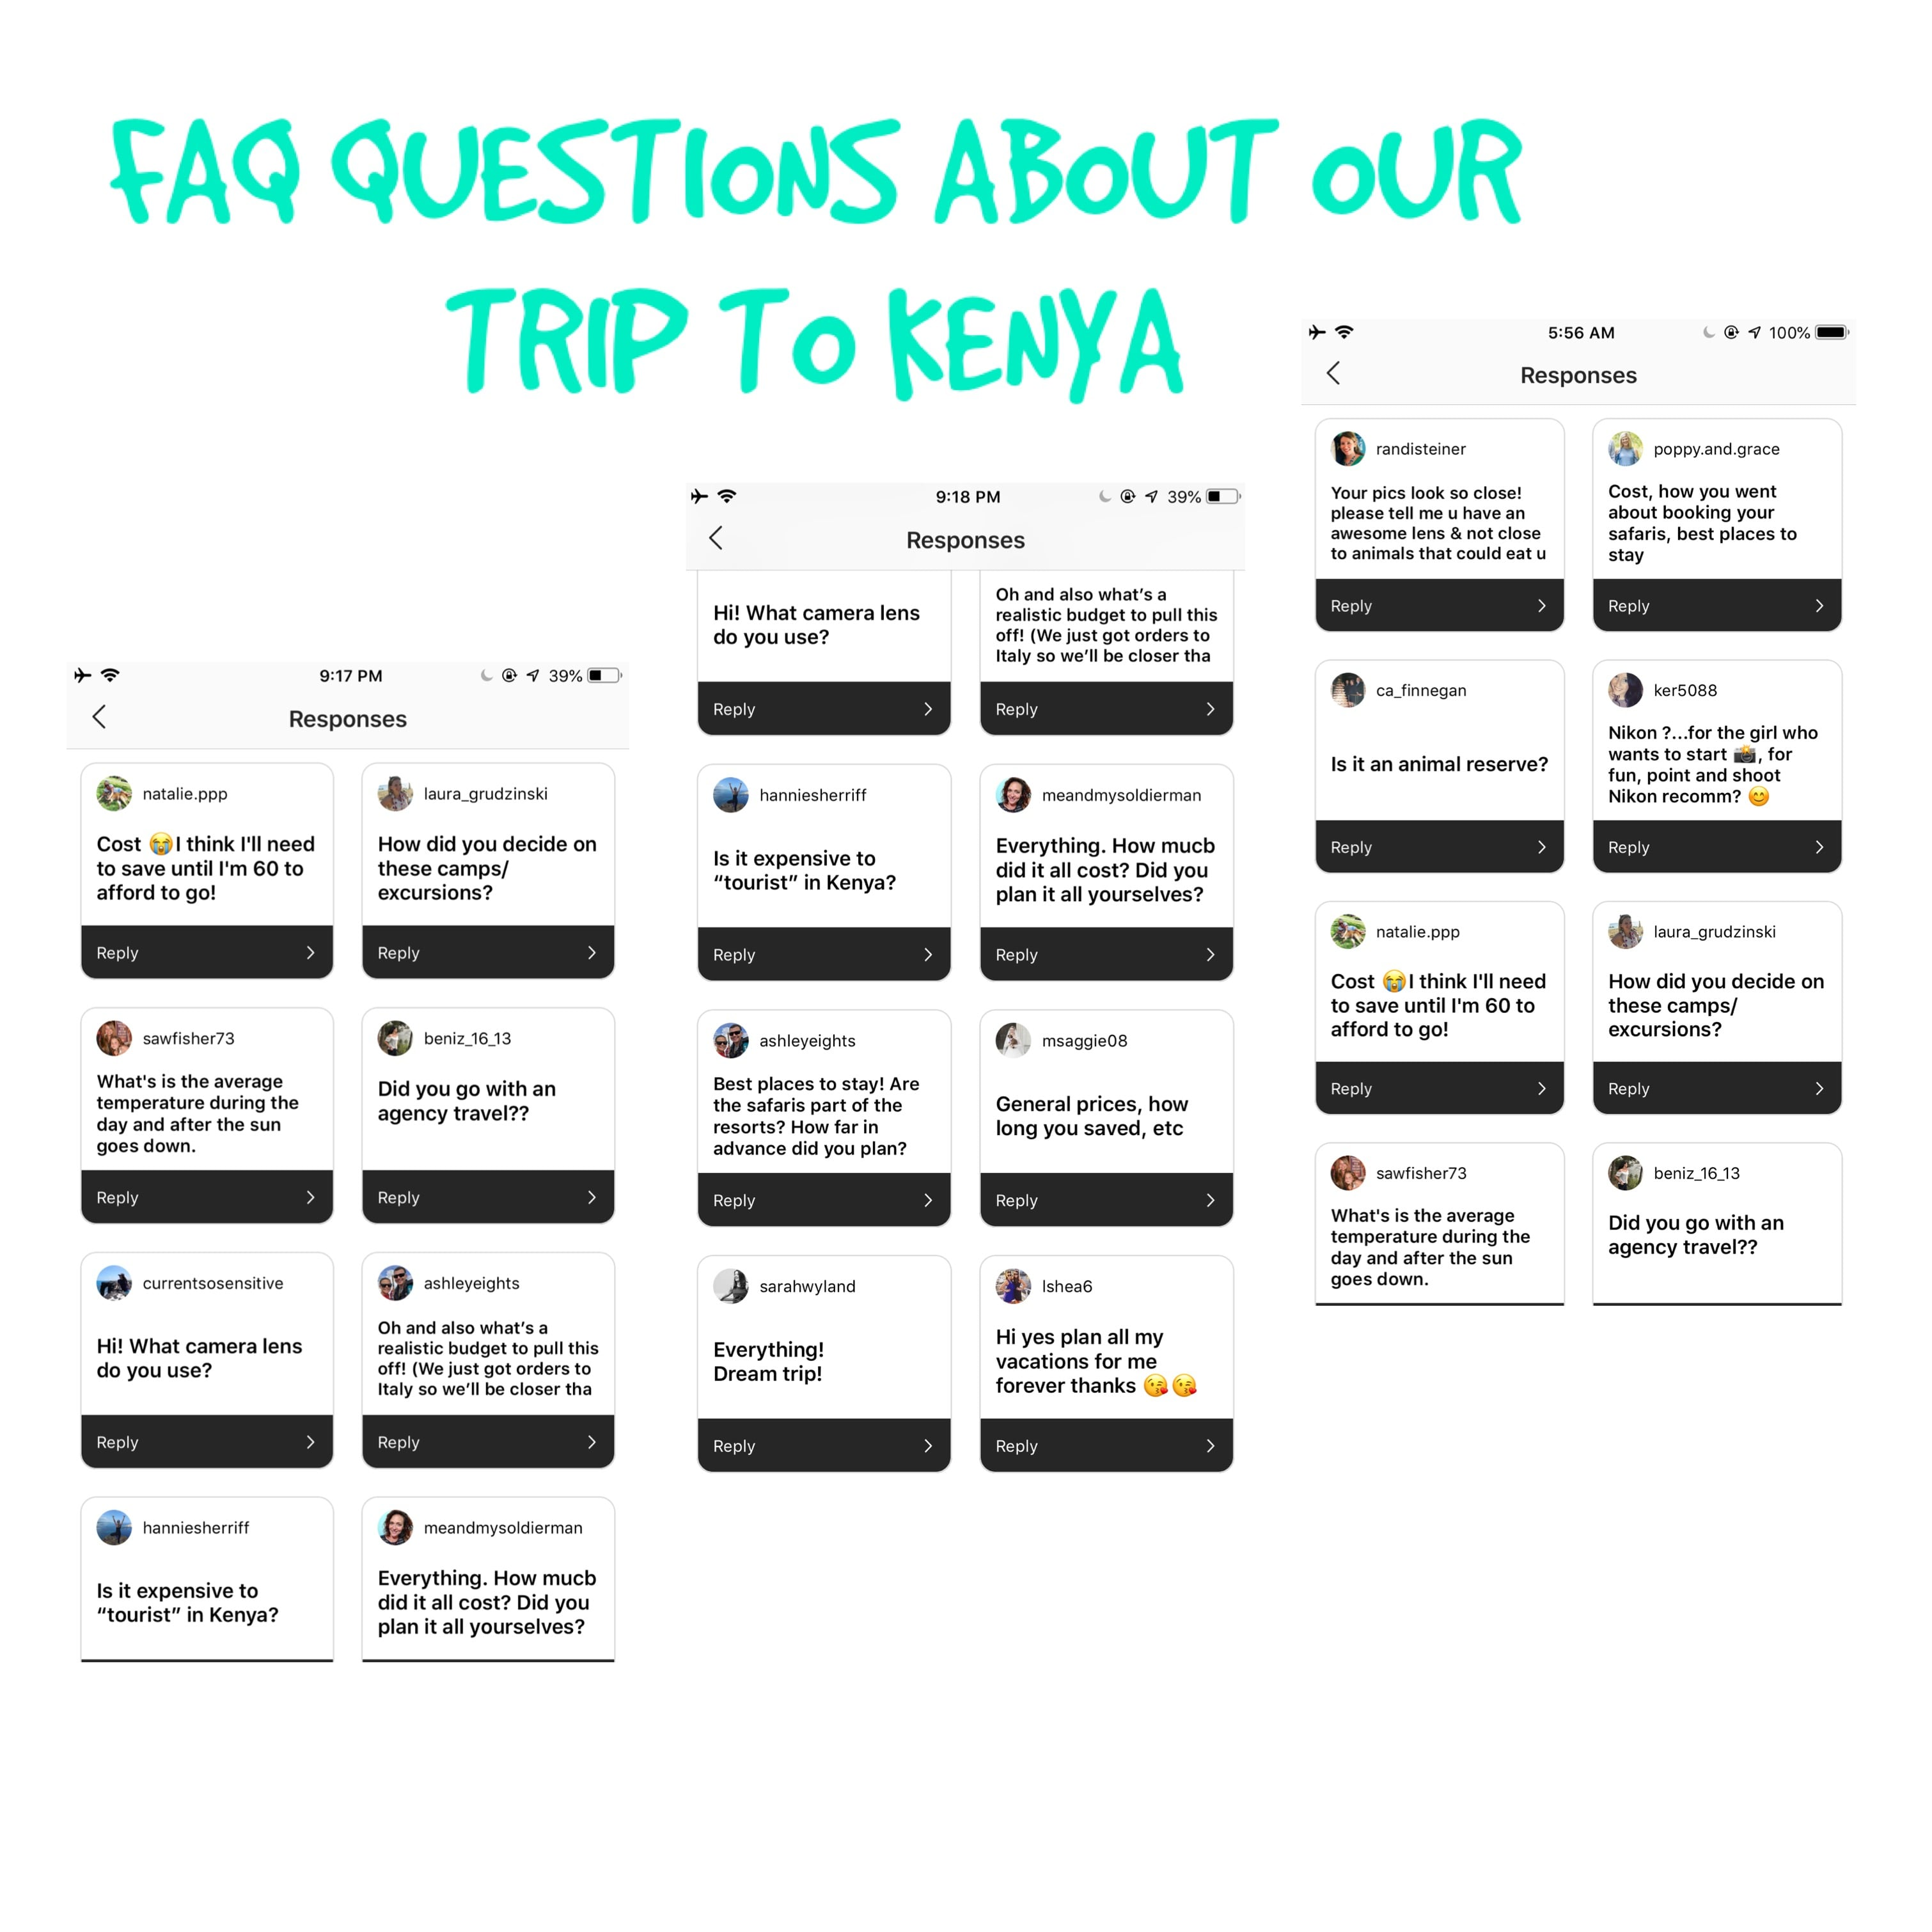 Frequently Asked Questions About Our Kenya Trip - Tsavo West National Park -- Kenya Safari - Kenya Safari Tours - Safari Kenya - Safari Trips In Kenya - Trip To Kenya - Kenyan Safari - How To Plan A Safari - Kenya Safari Guide - Kenya Wildlife - Kenya Trip - Travel To Kenya - Guide To Kenya - Maasai Mara